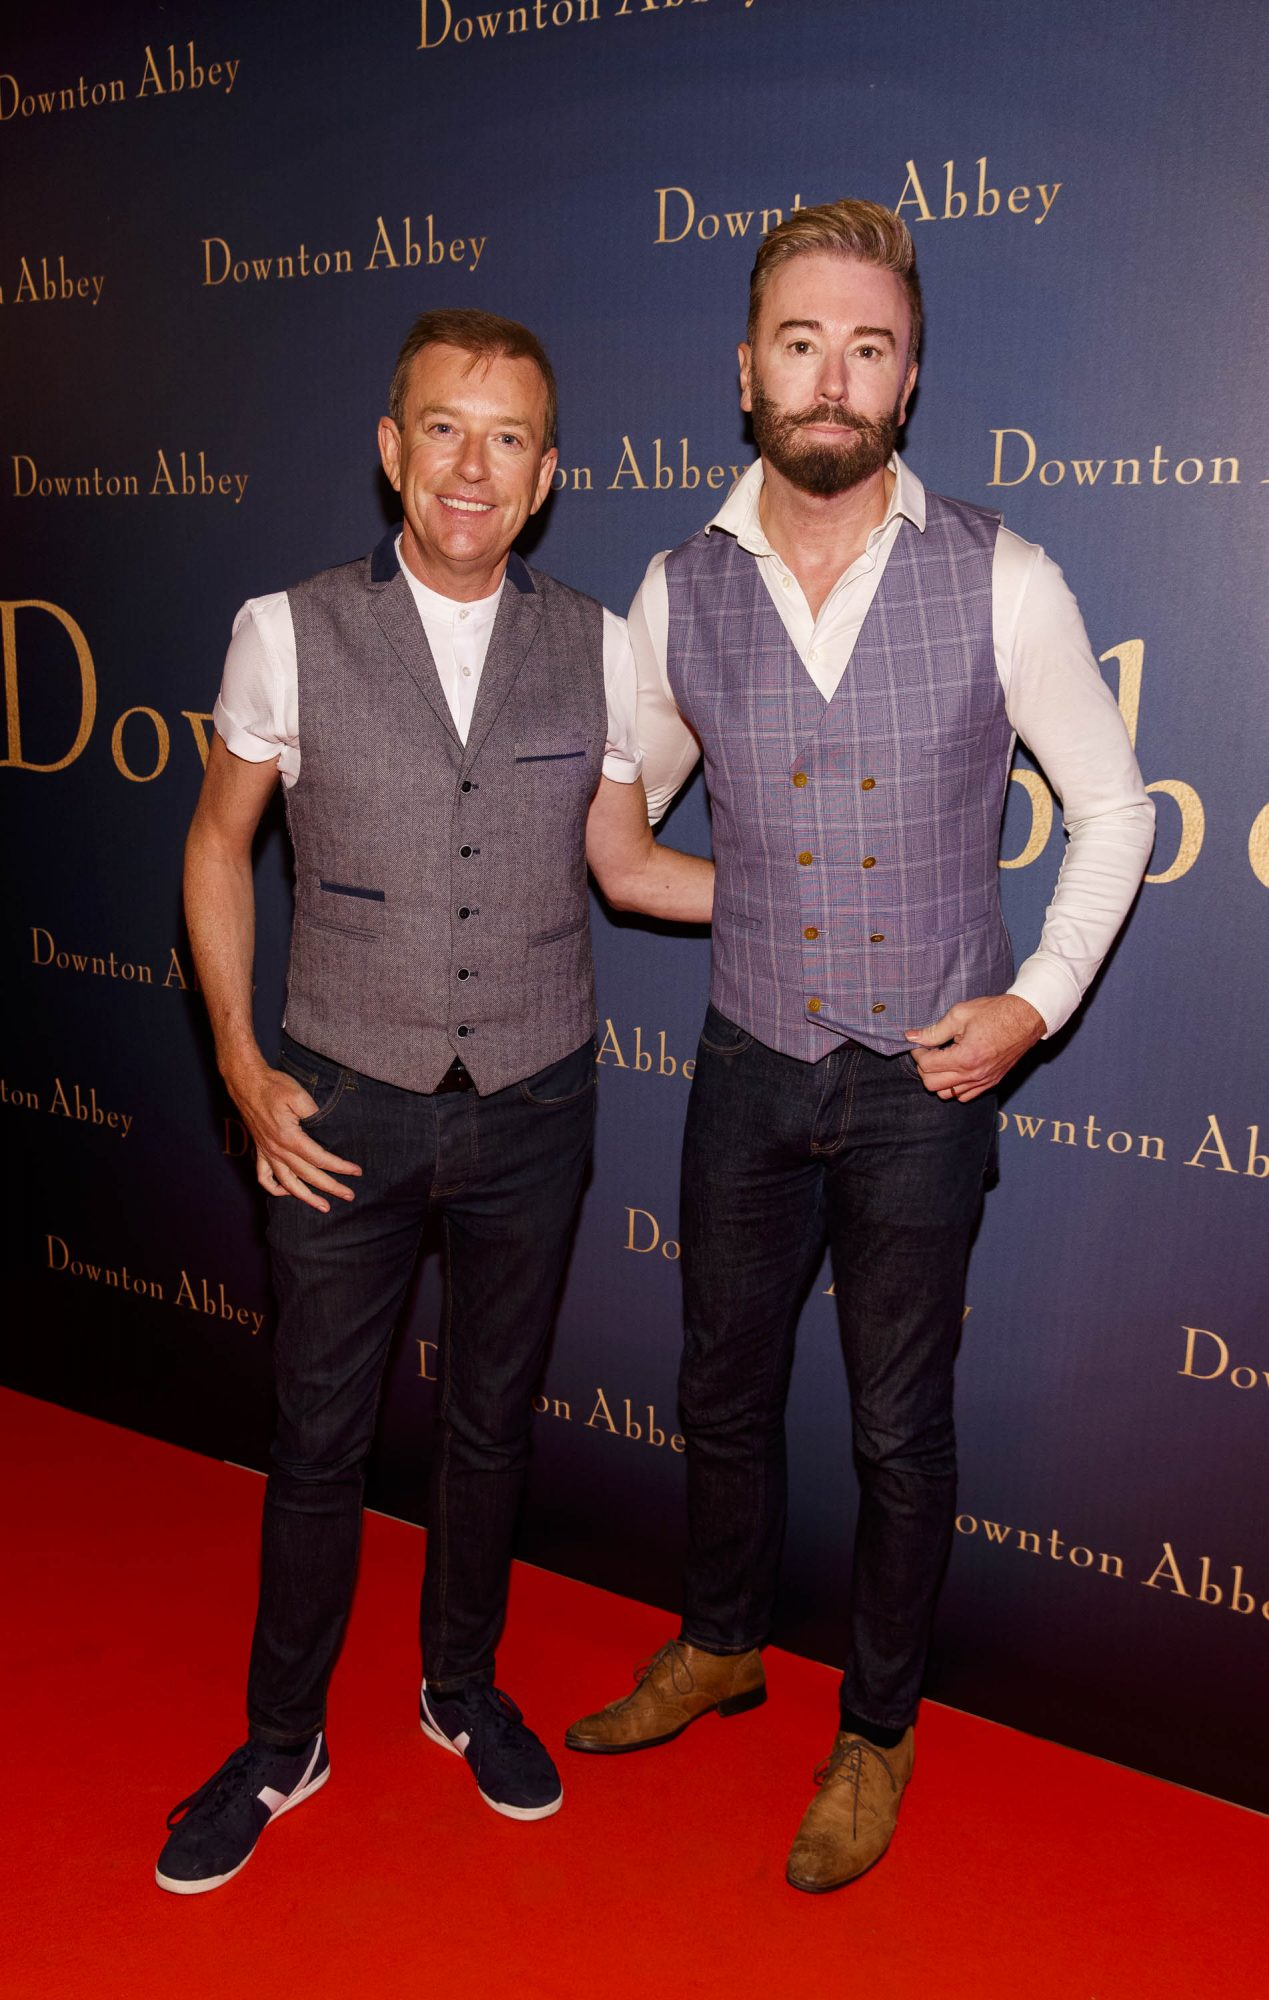 Alan Hughes and Karl Broderick pictured at the Universal Pictures Irish premiere screening of DOWNTON ABBEY at The Stella Theatre, Rathmines. Releasing in cinemas across Ireland from this Friday September 13th, starring the original cast, the worldwide phenomenon DOWNTON ABBEY, becomes a grand motion picture event. Picture Andres Poveda